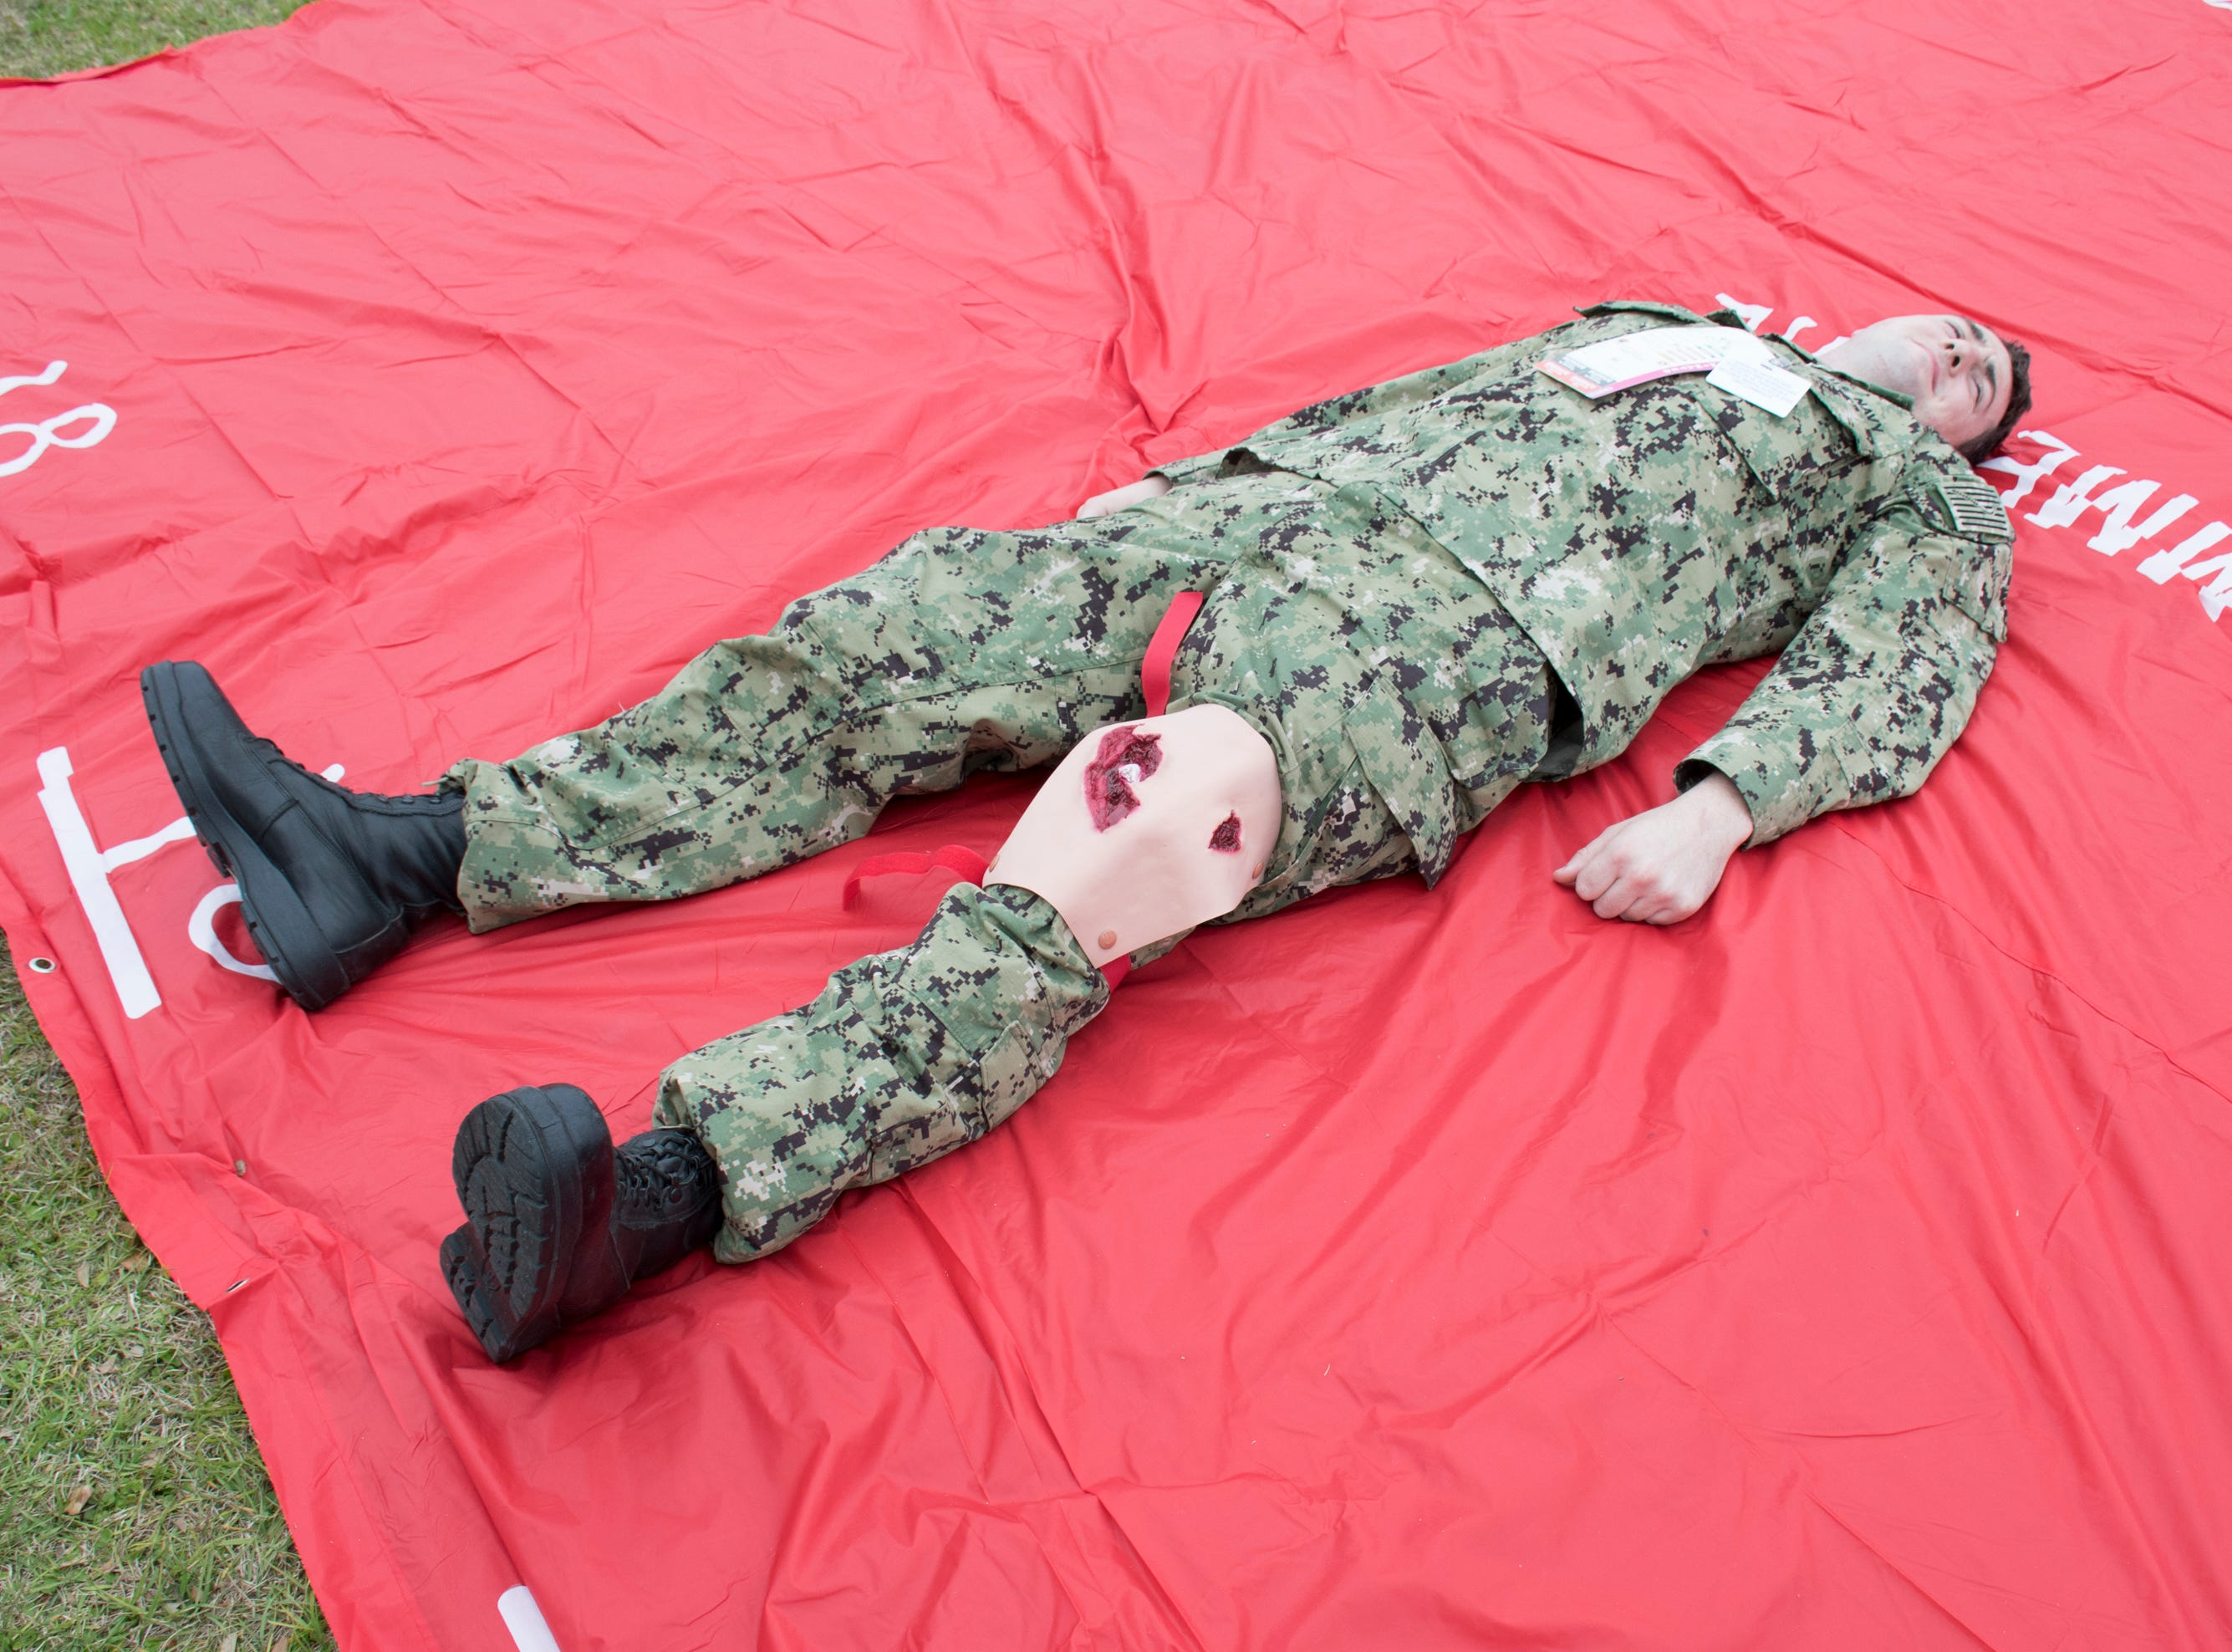 A sailor acting as a casualty lays wounded in the triage area during Exercise Solid Curtain-Citadel Shield, an annual security exercise is conducted at NAS Pensacola on Tuesday, February 4, 2019.